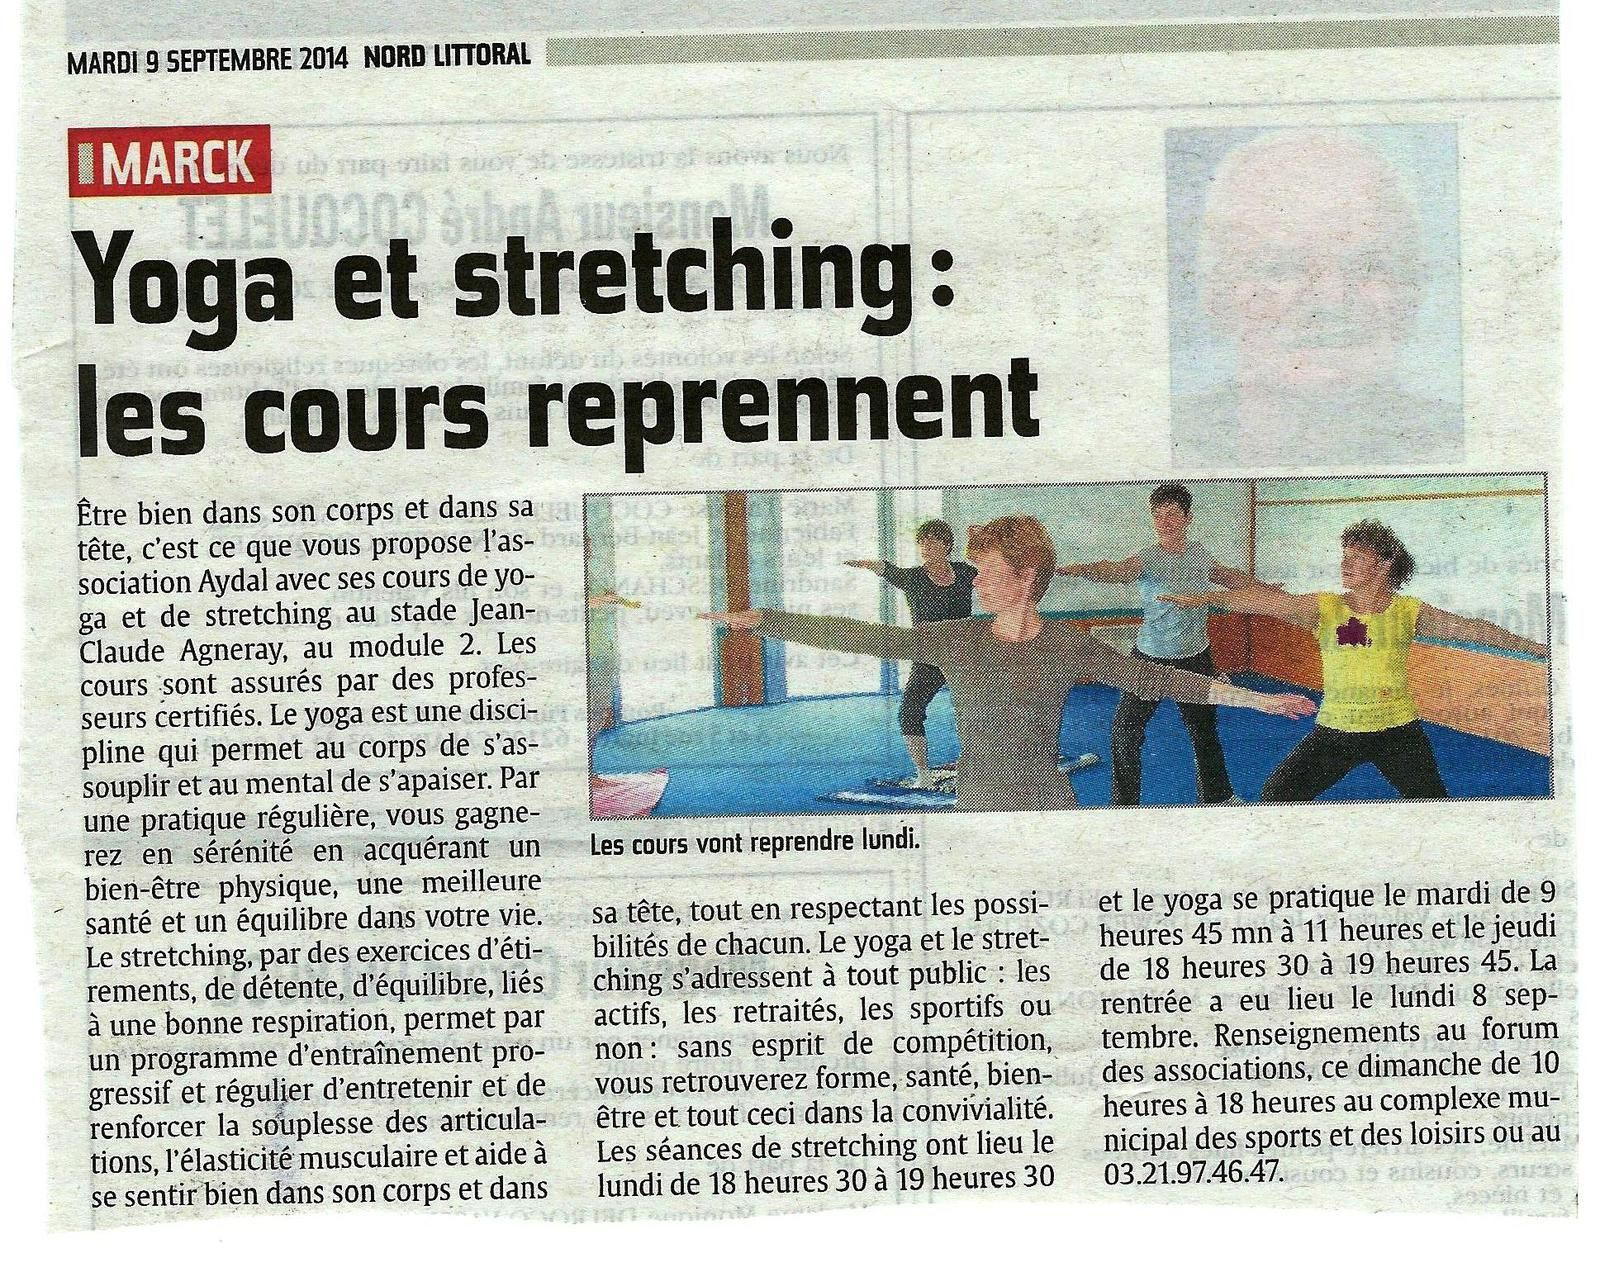 Yoga et Stretching à Marck (article de Nord Littoral)